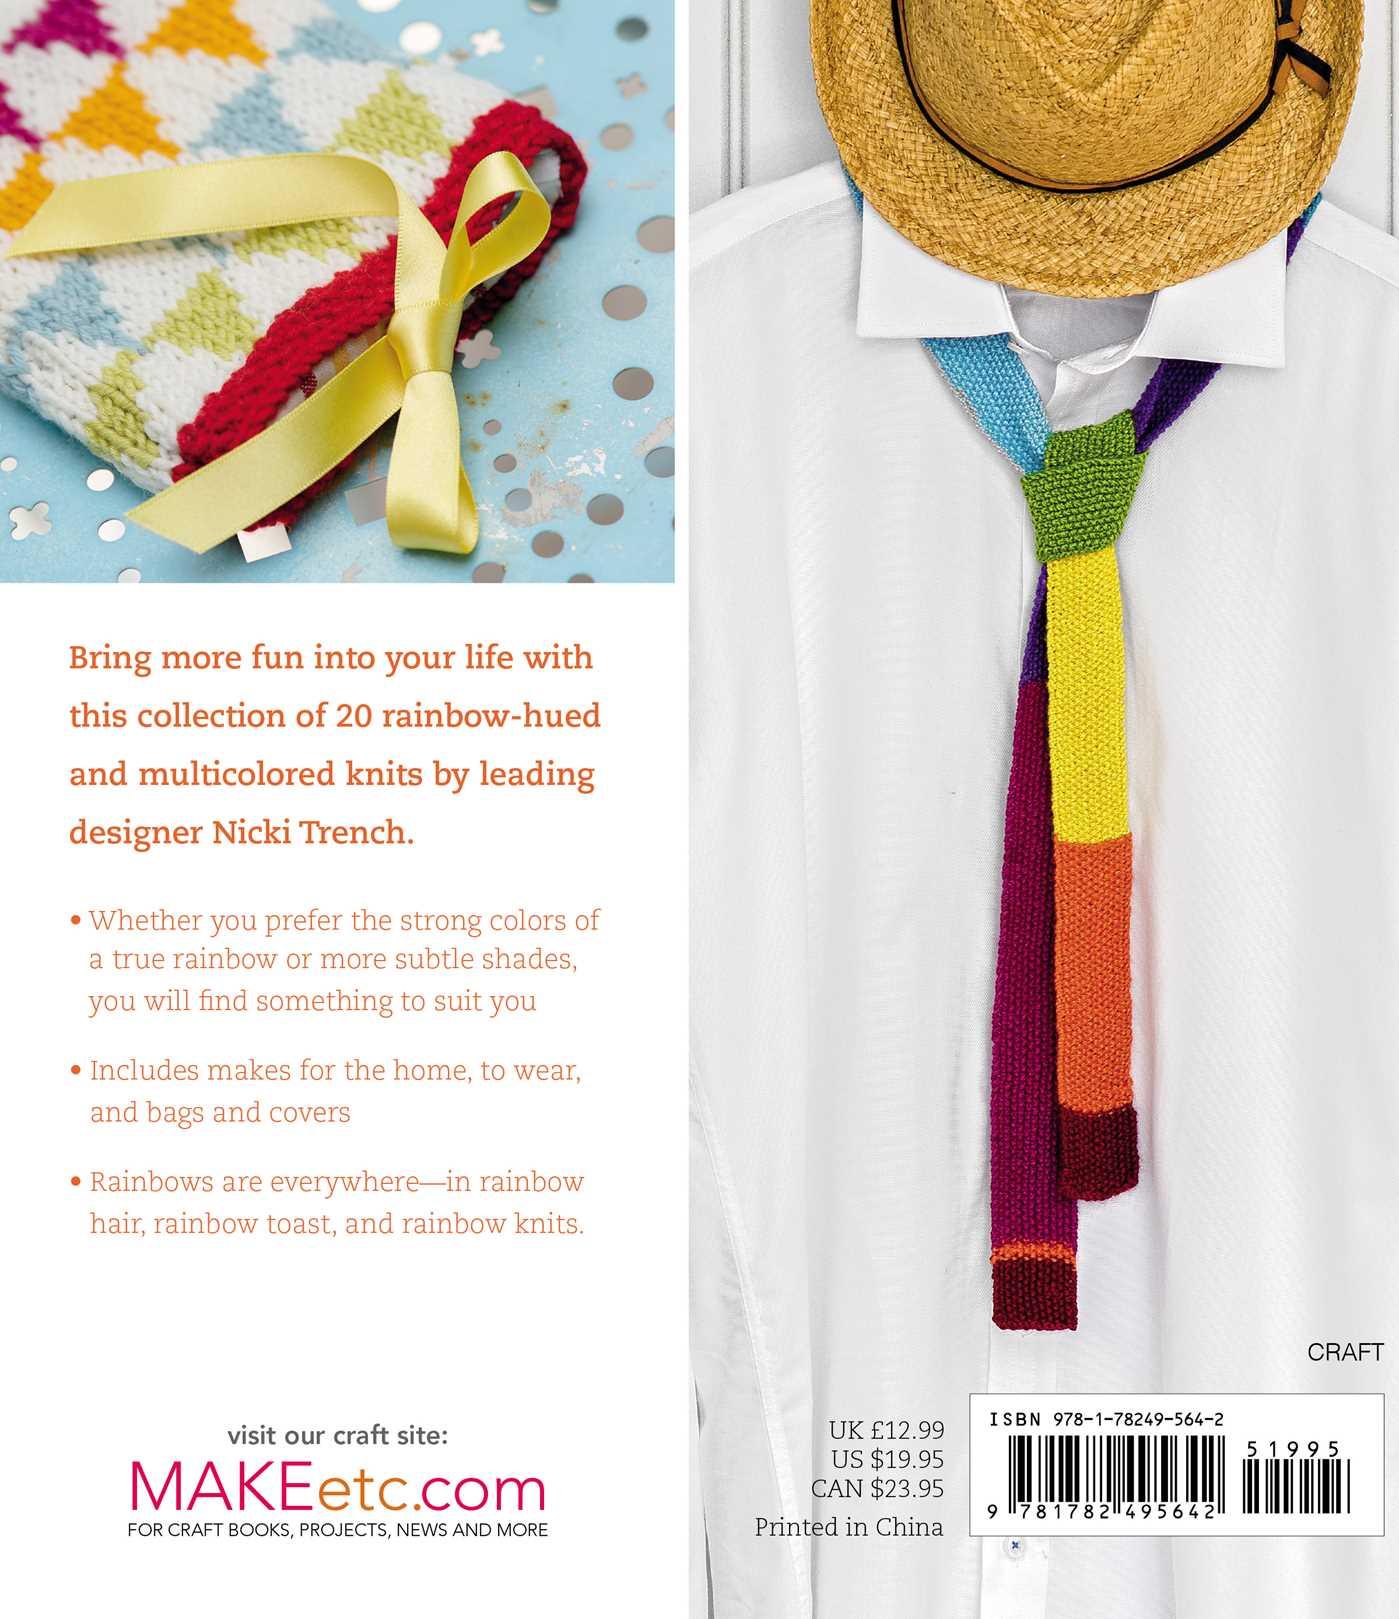 rainbow knits book by nicki trench official publisher page